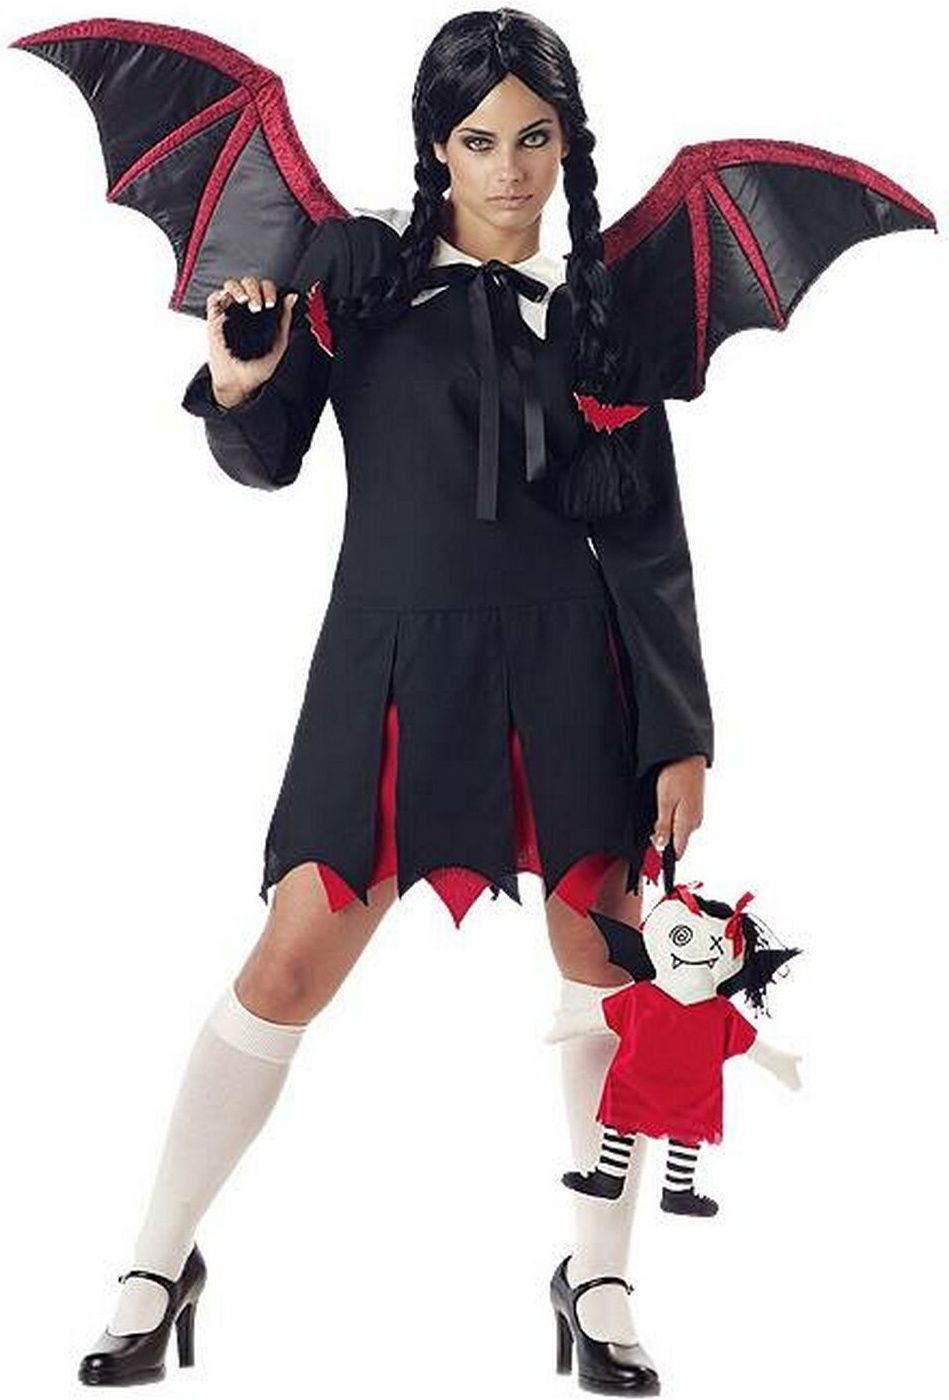 Very #Bat Girl Costume - Teen Halloween Costume - Teenager Halloween Costume  sc 1 st  Pinterest & Very #Bat Girl Costume - Teen Halloween Costume - Teenager Halloween ...